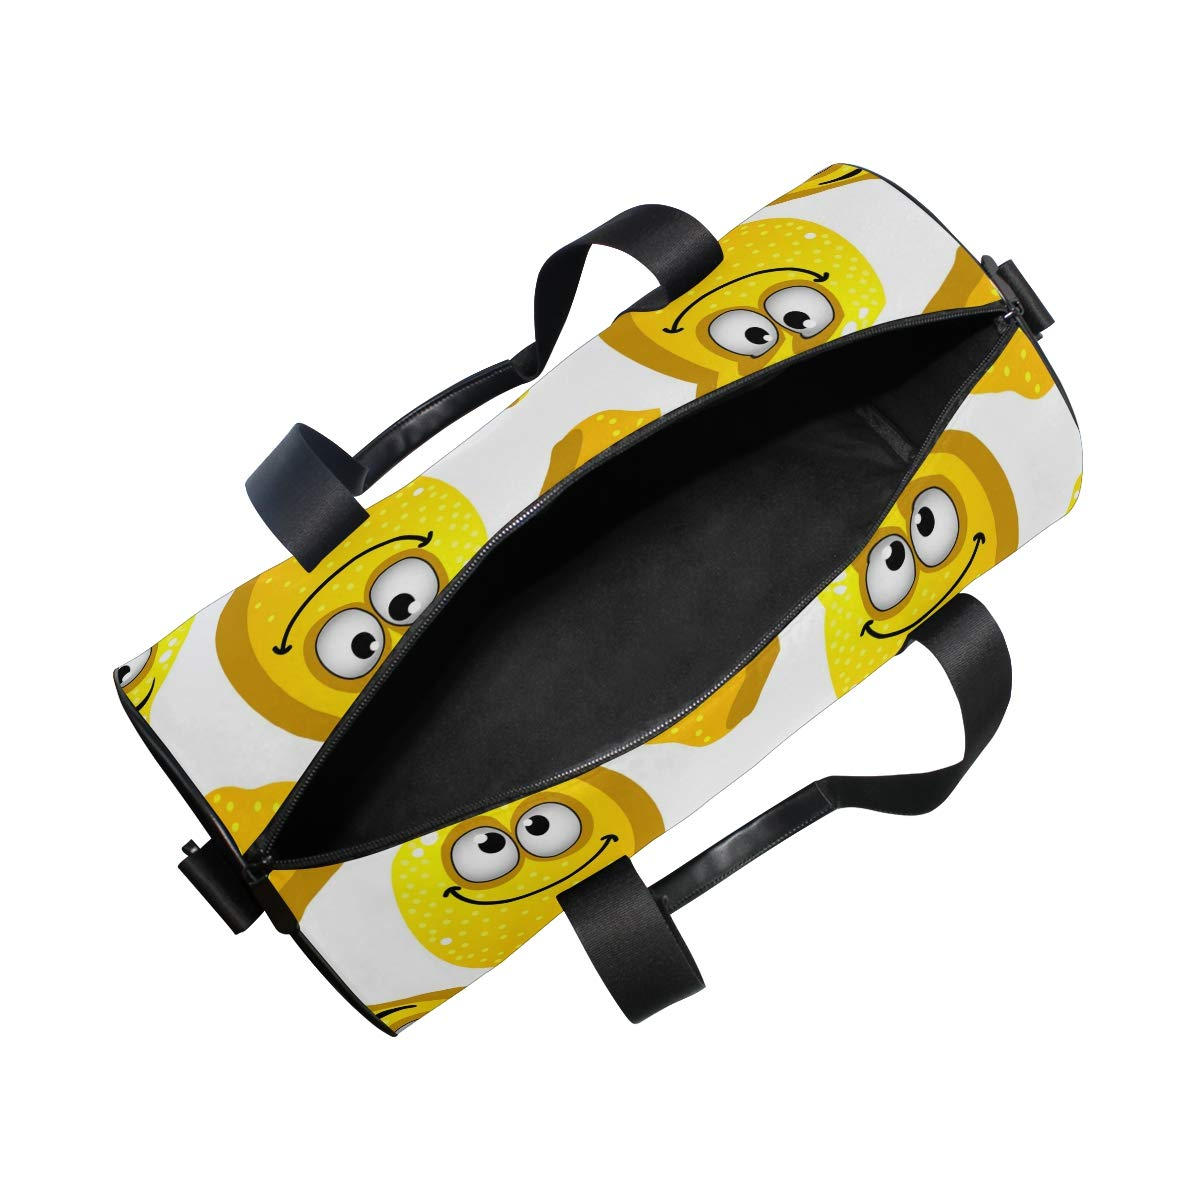 WIHVE Gym Duffel Bag Cartoon Yellow Lemons Smiling With Googly Eyes Sports Lightweight Canvas Travel Luggage Bag